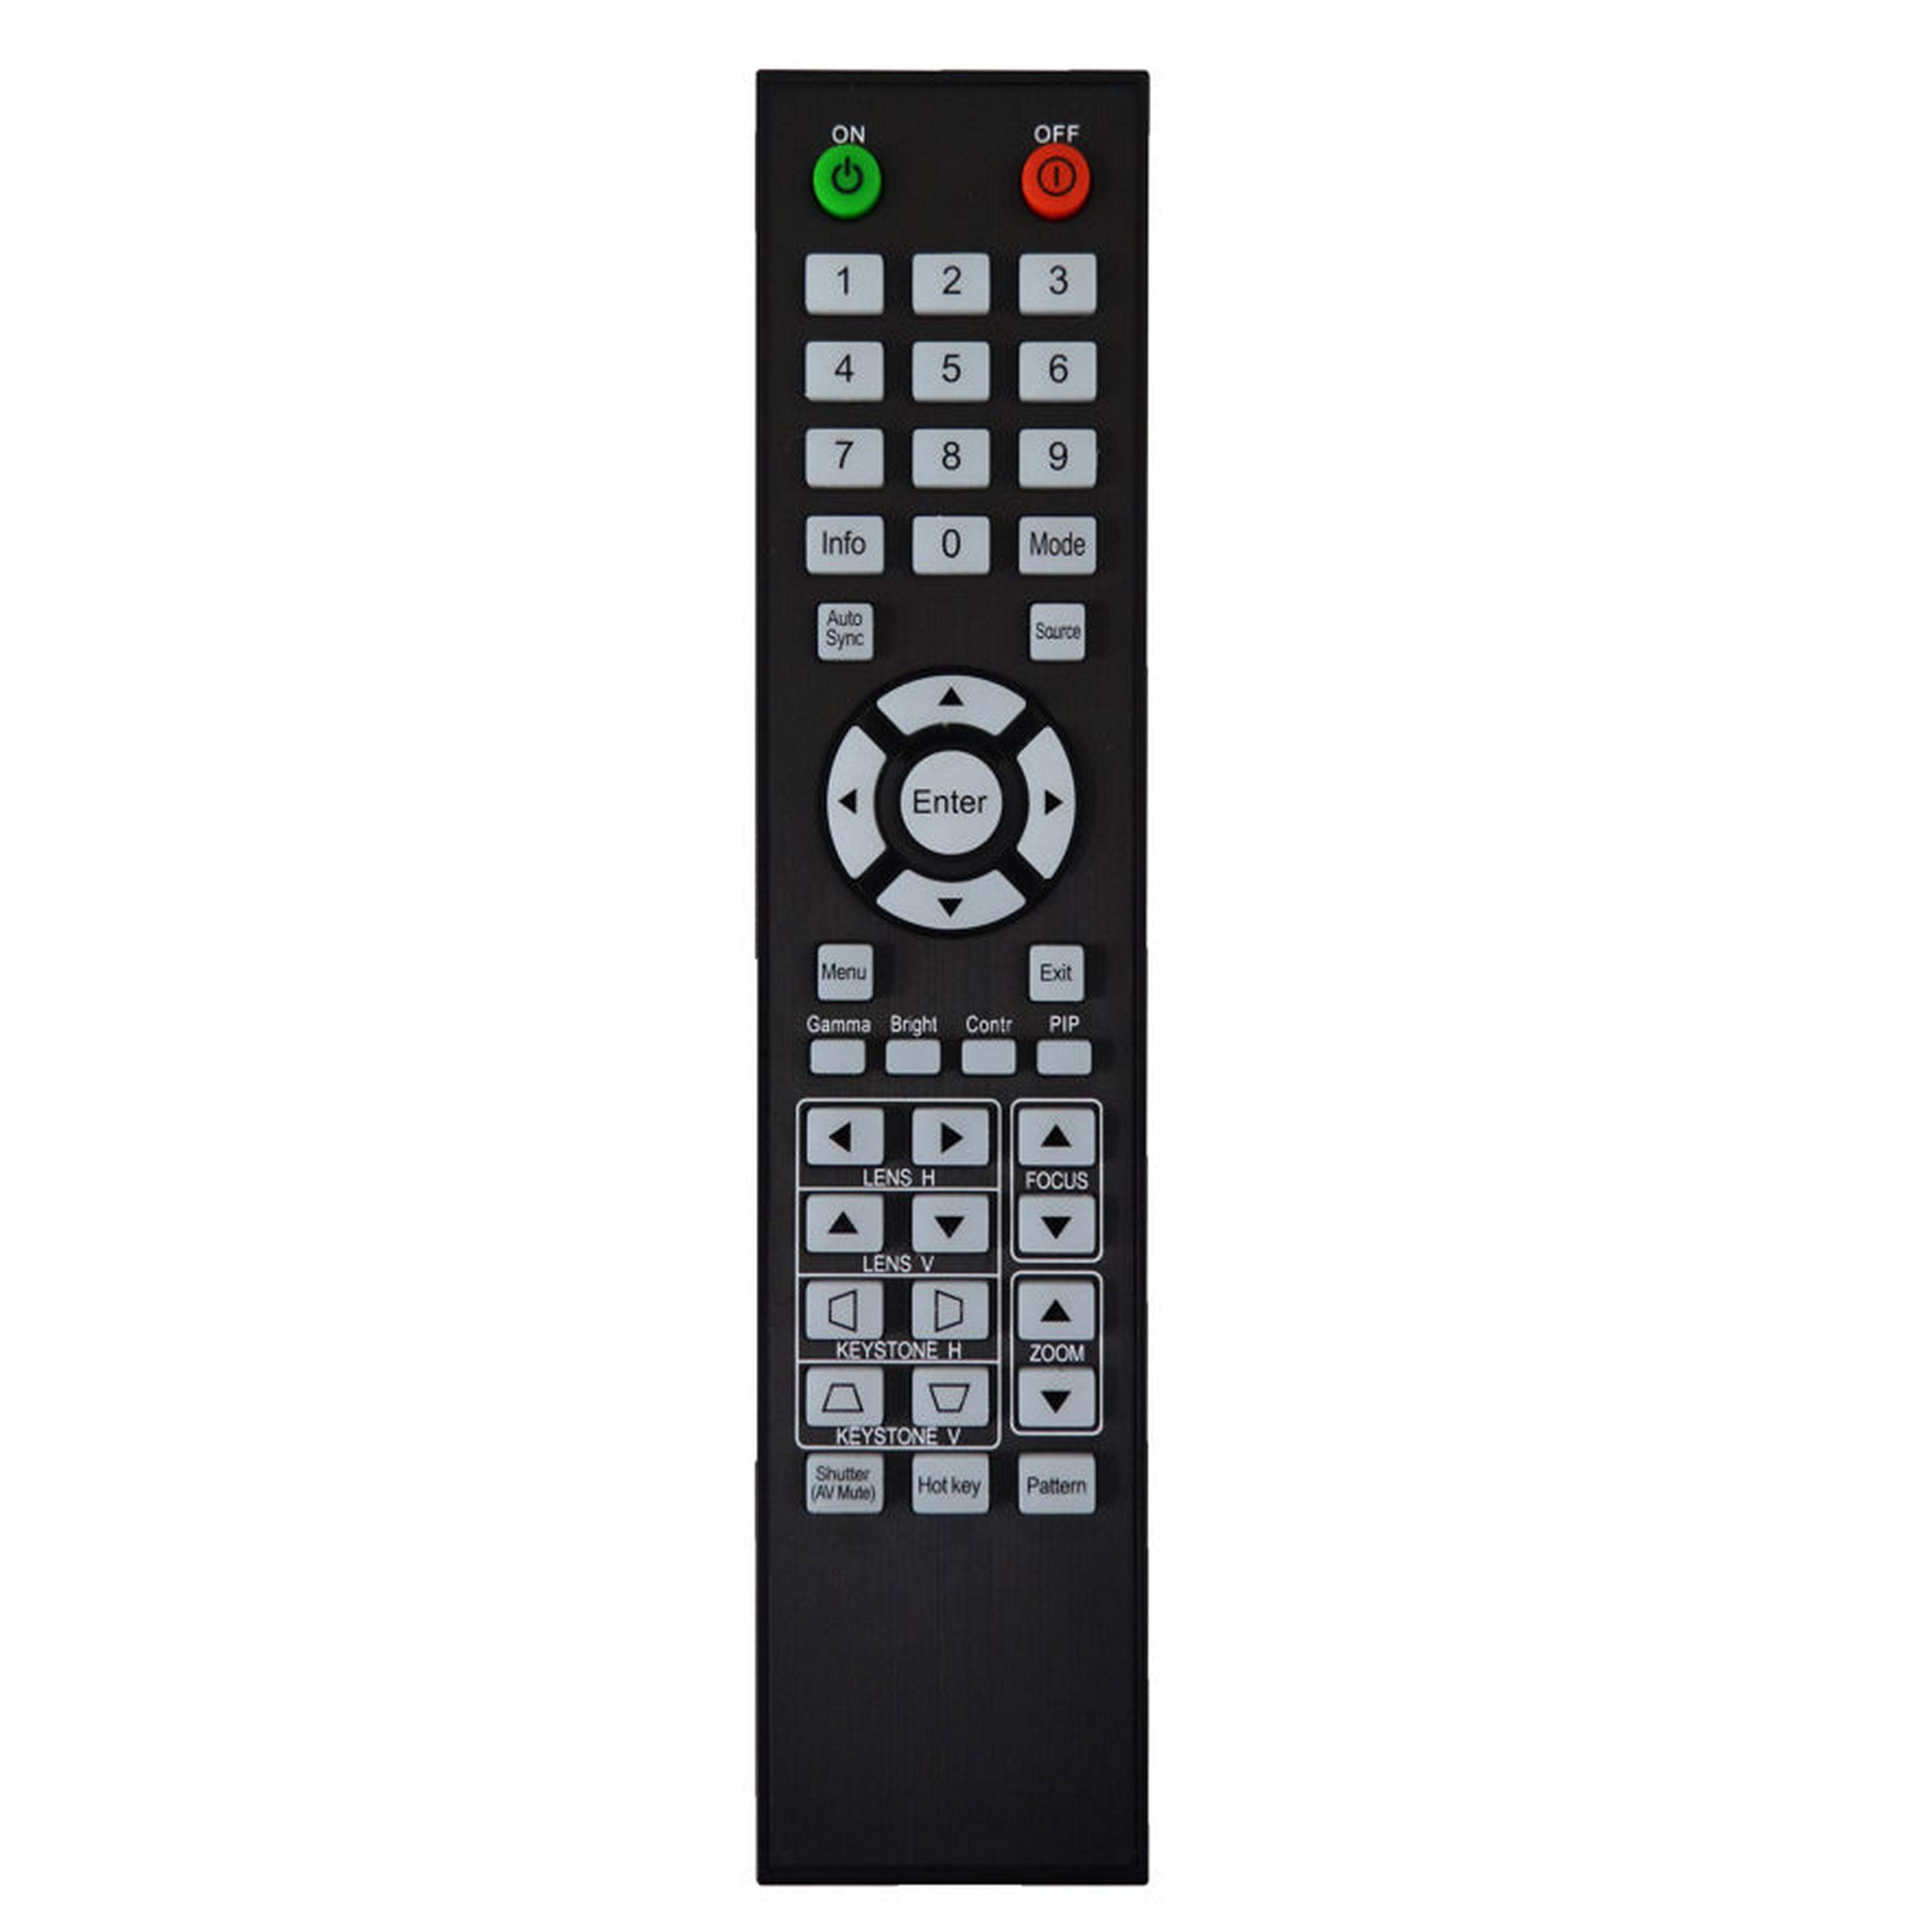 Eiki 45.78901G001 Remote Control for EK-800U Video Projector